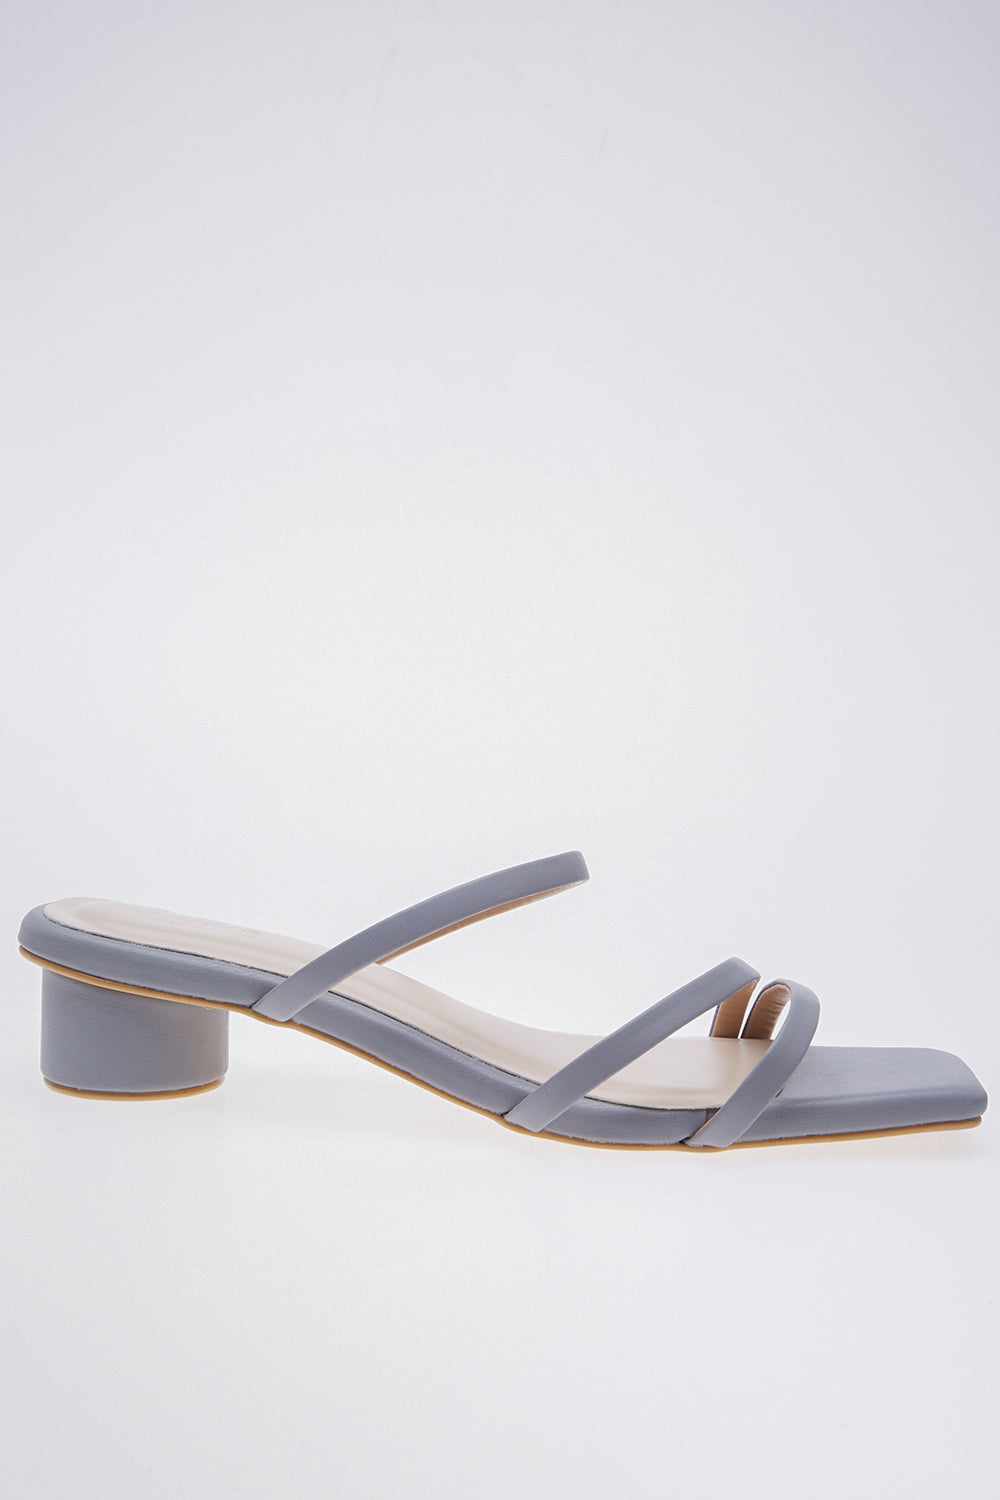 Livia Shoes in Grey